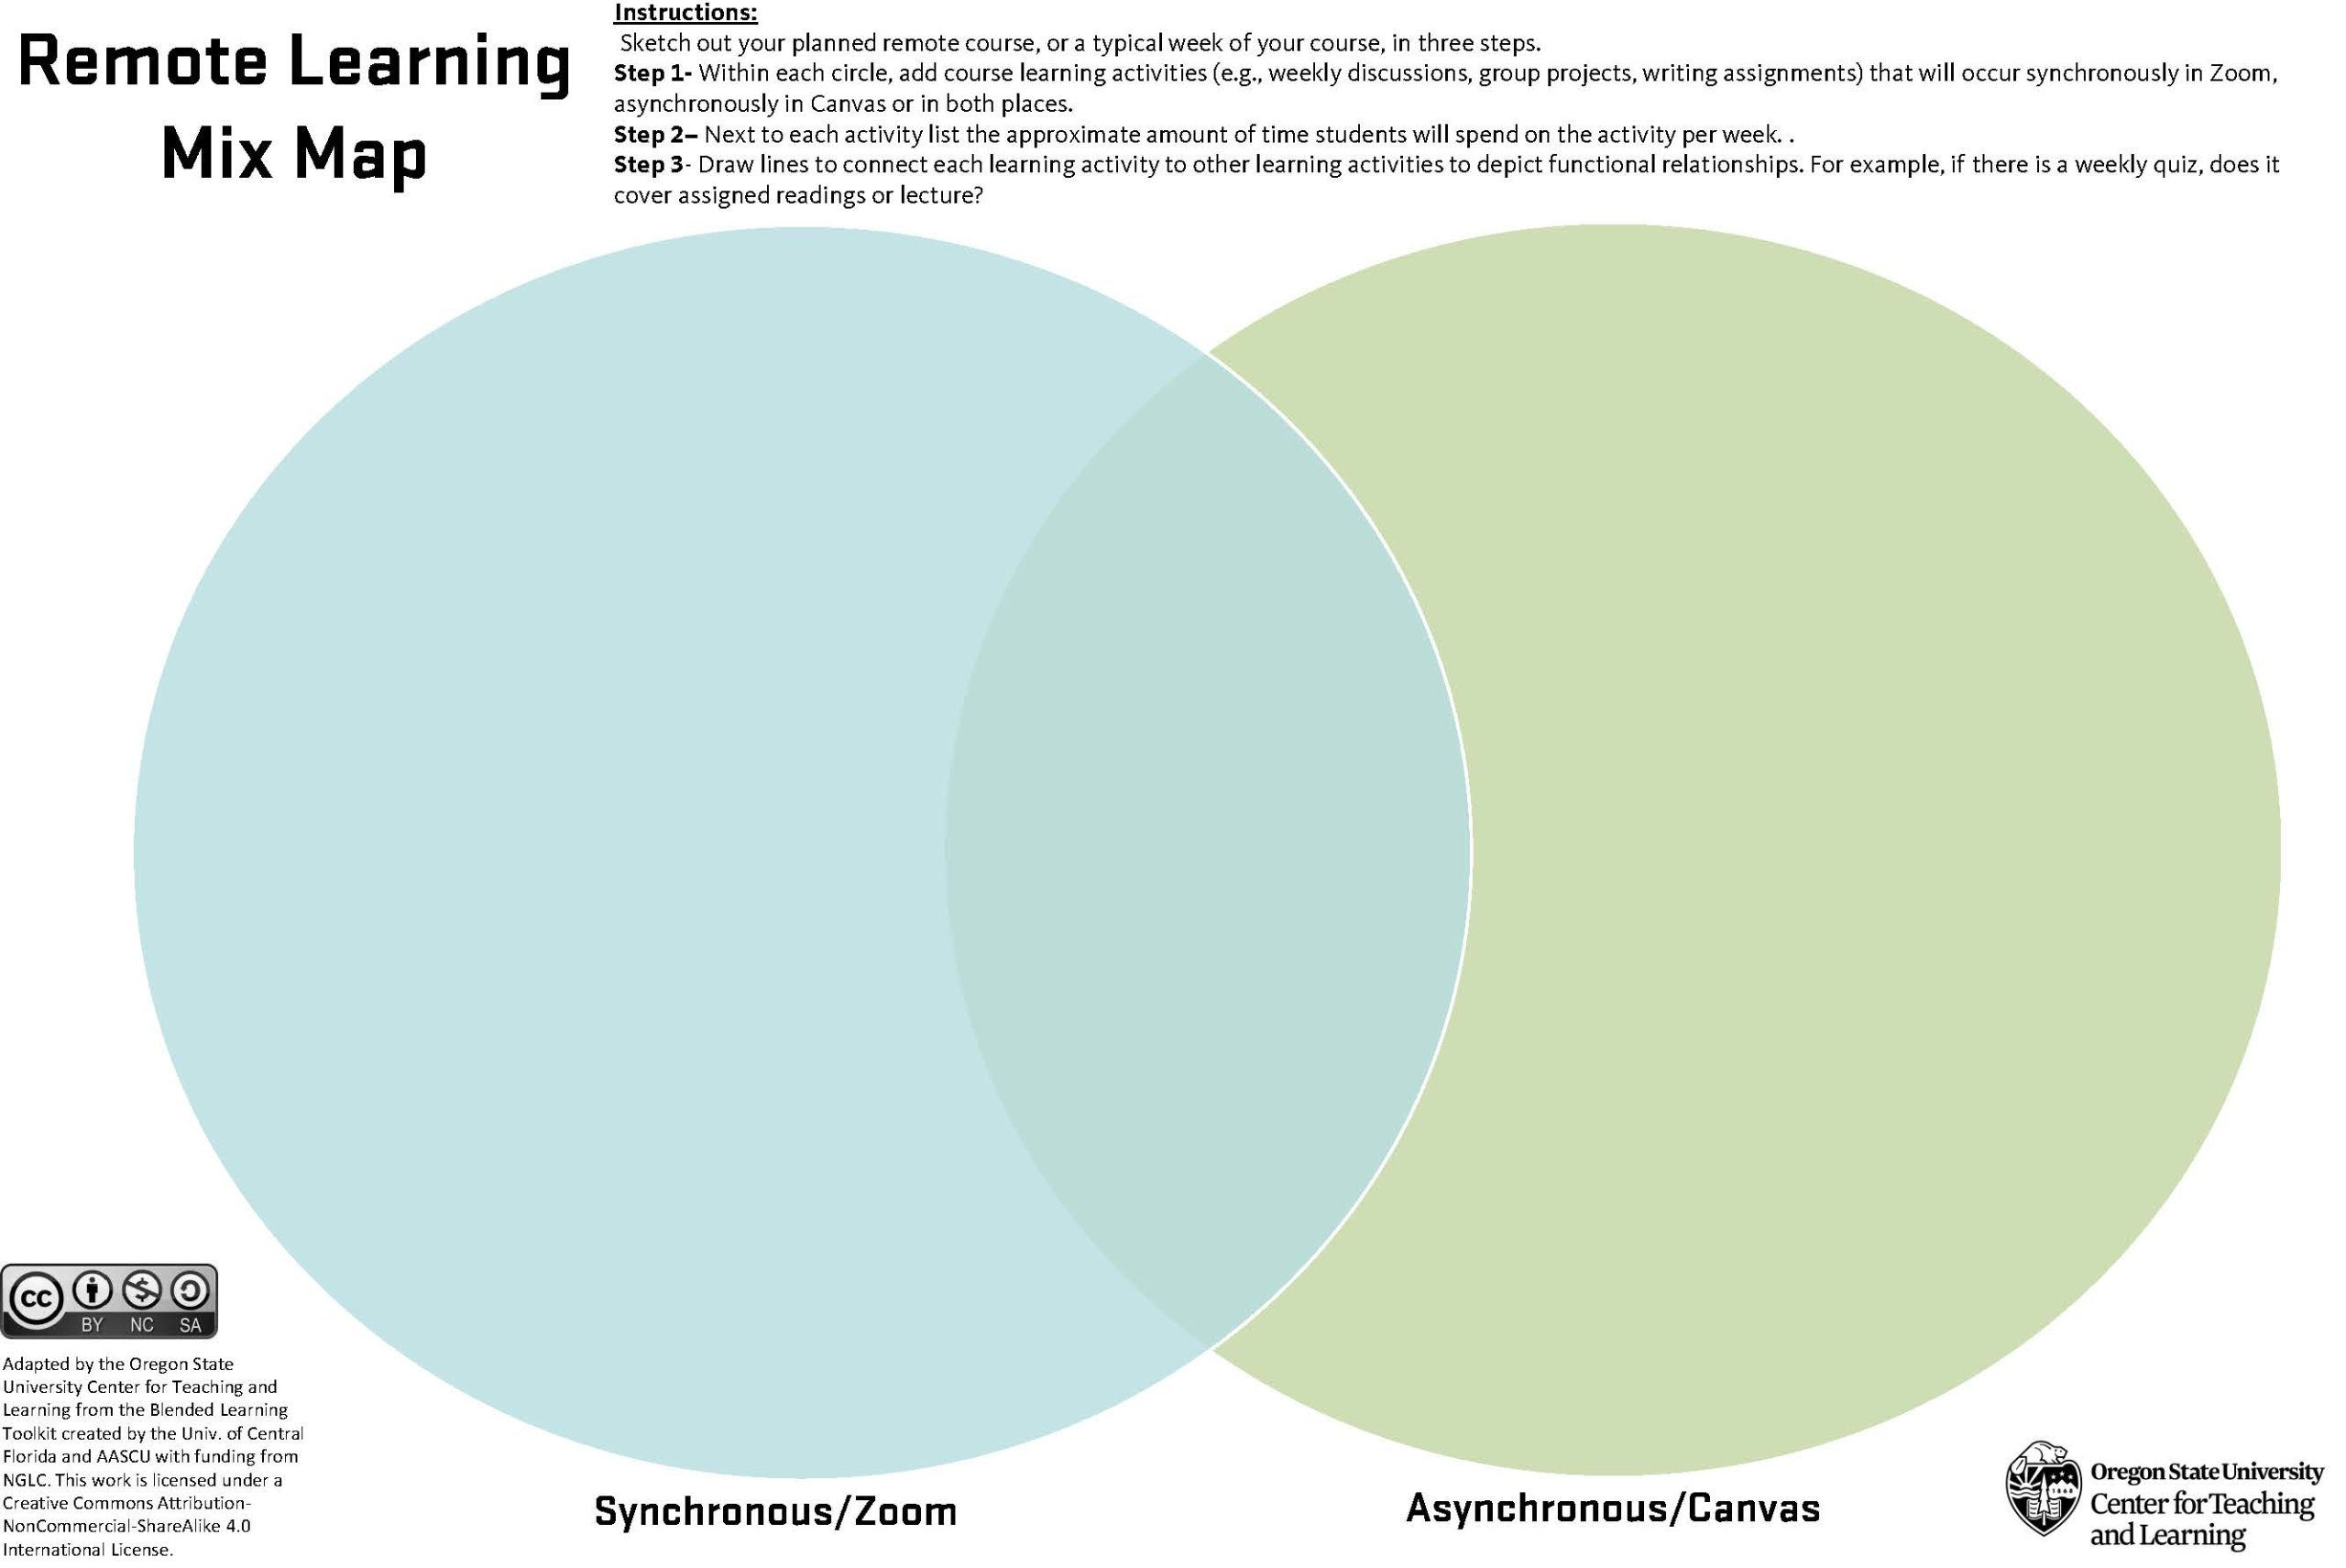 Remote Learning Mix Map